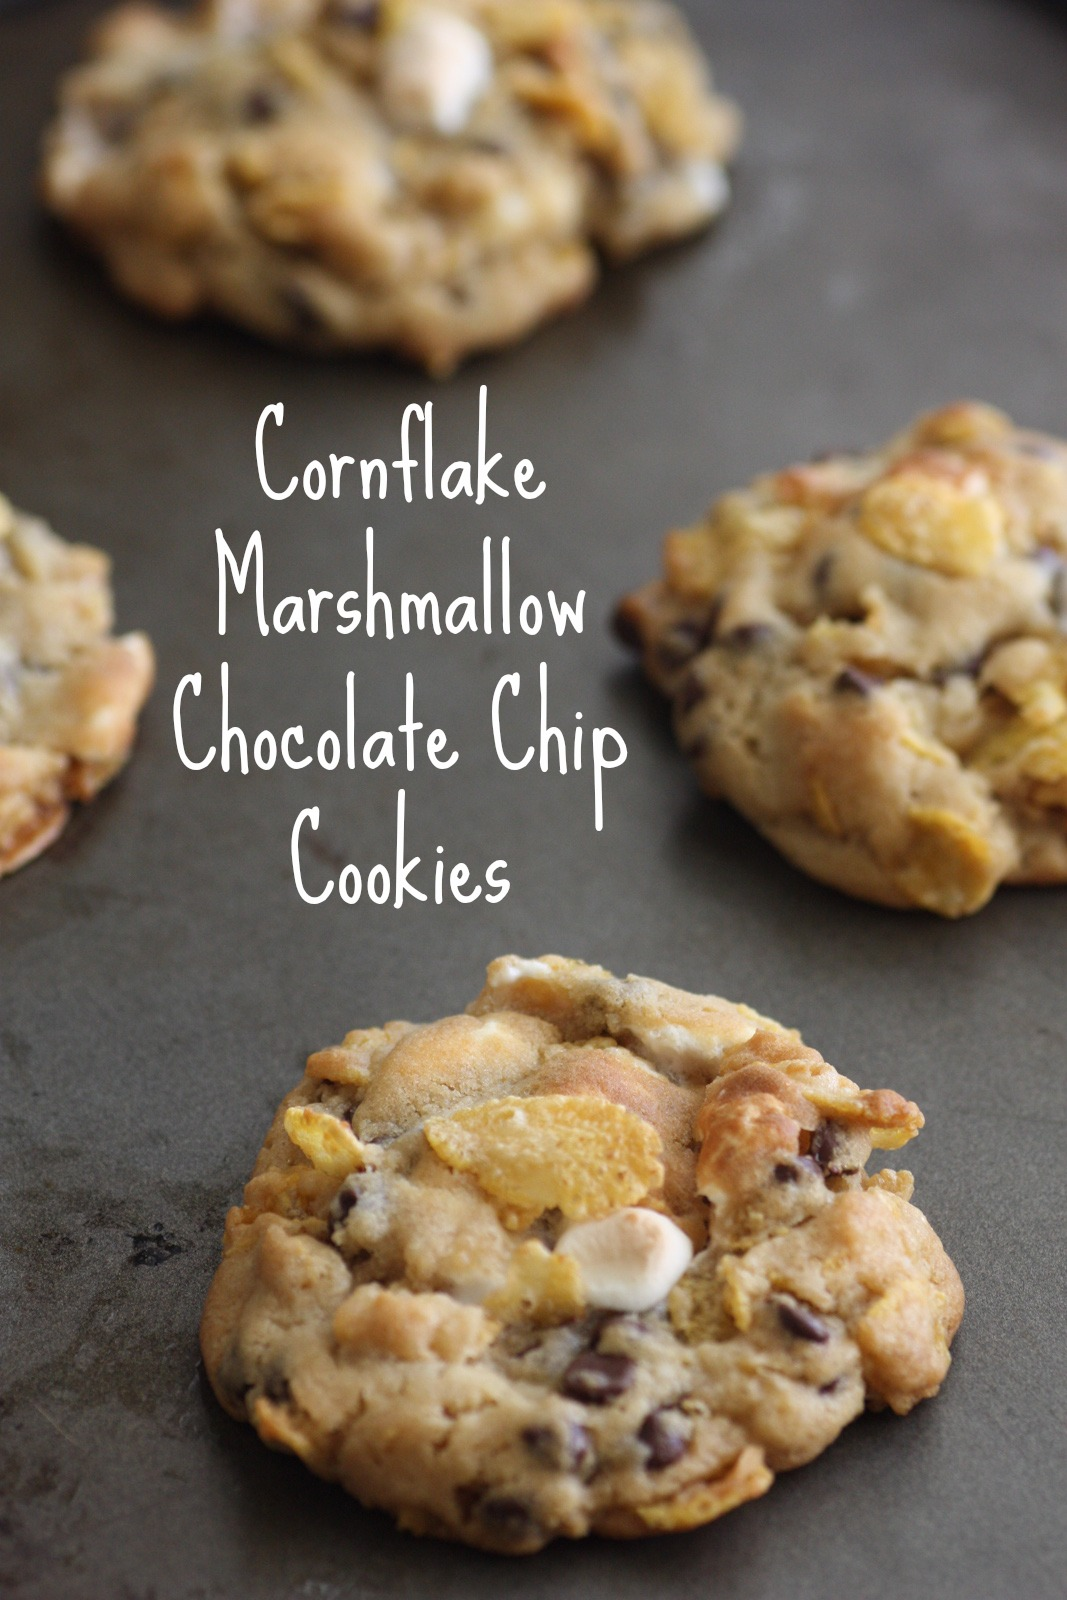 ... check out our cornflake chocolate chip marshmallow cookie recipe